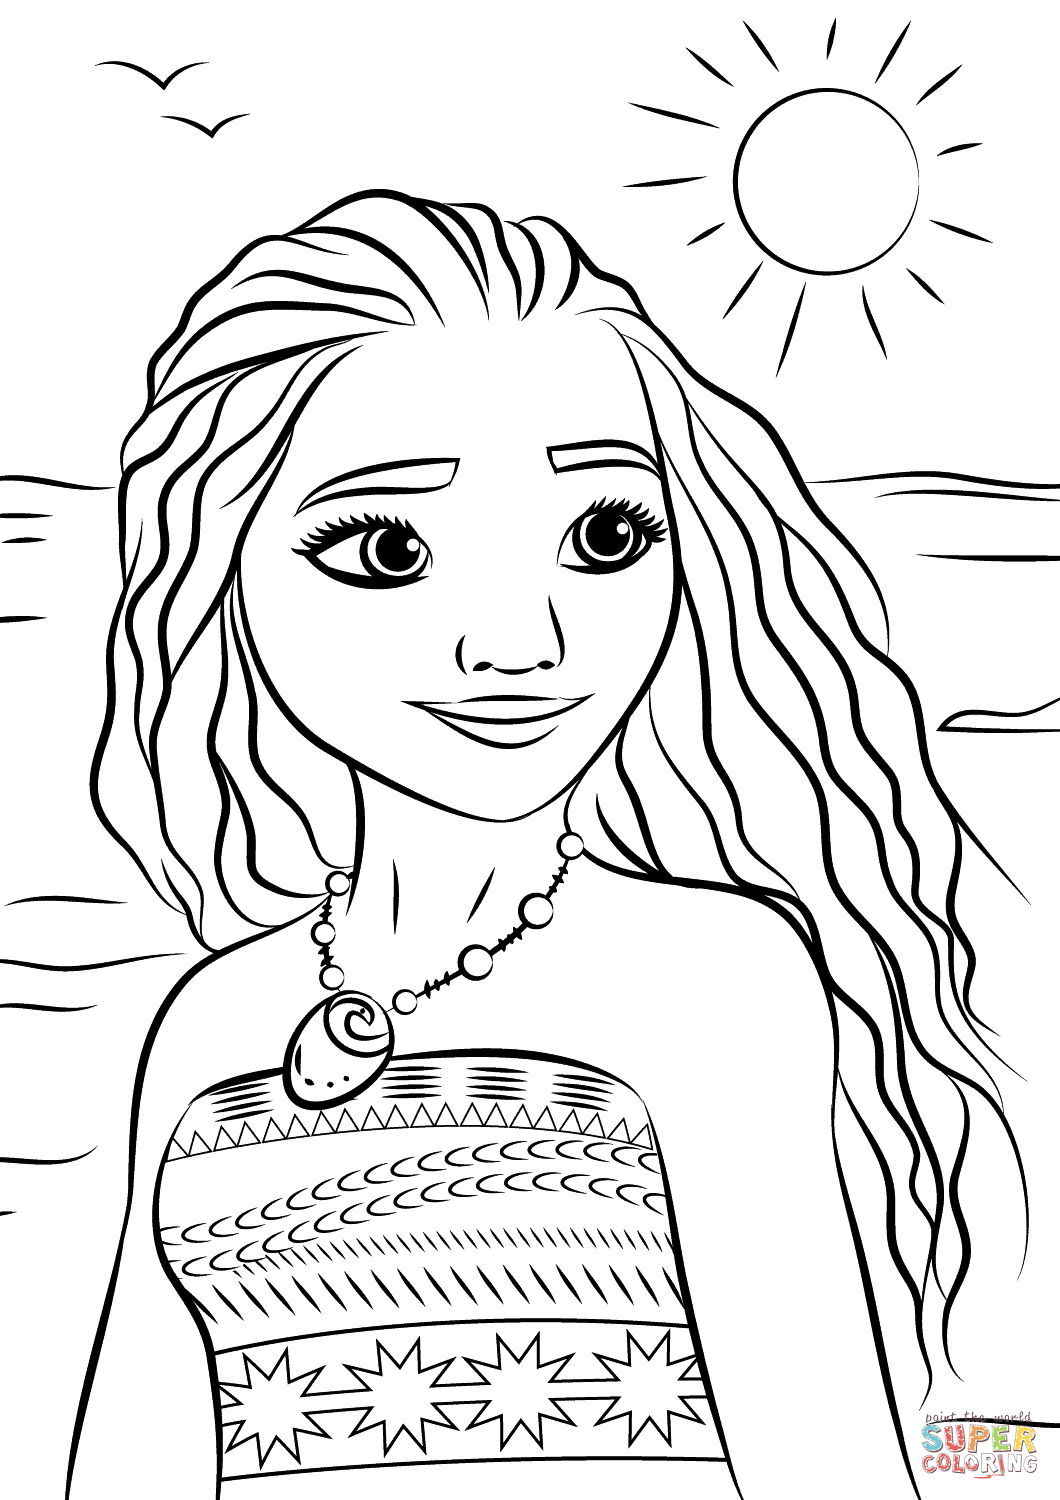 moana coloring pages printable free the best moana printable coloring pages mitchell blog coloring printable moana free pages